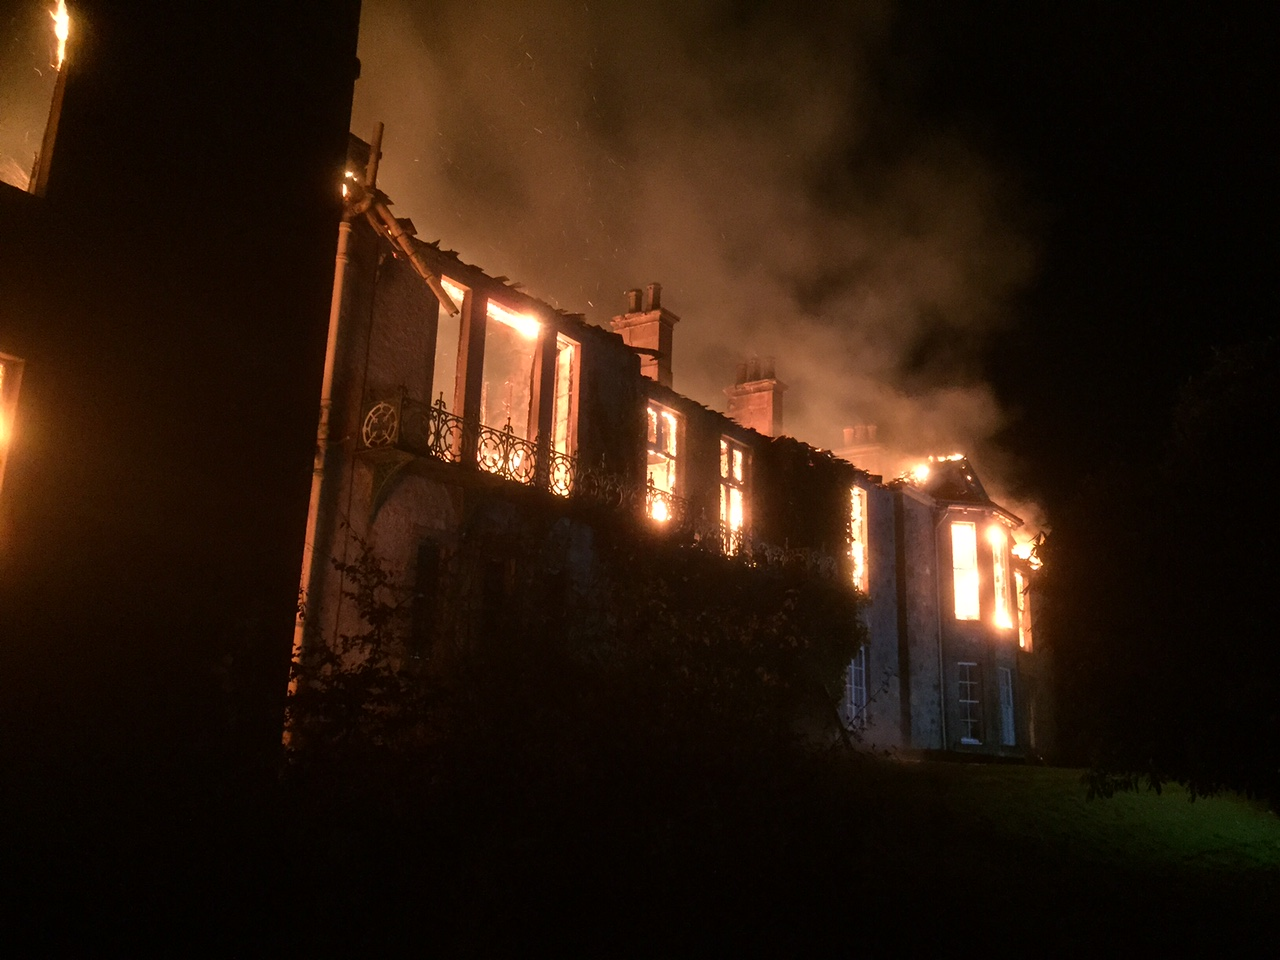 SFRS still at scene of house fire outside Elgin